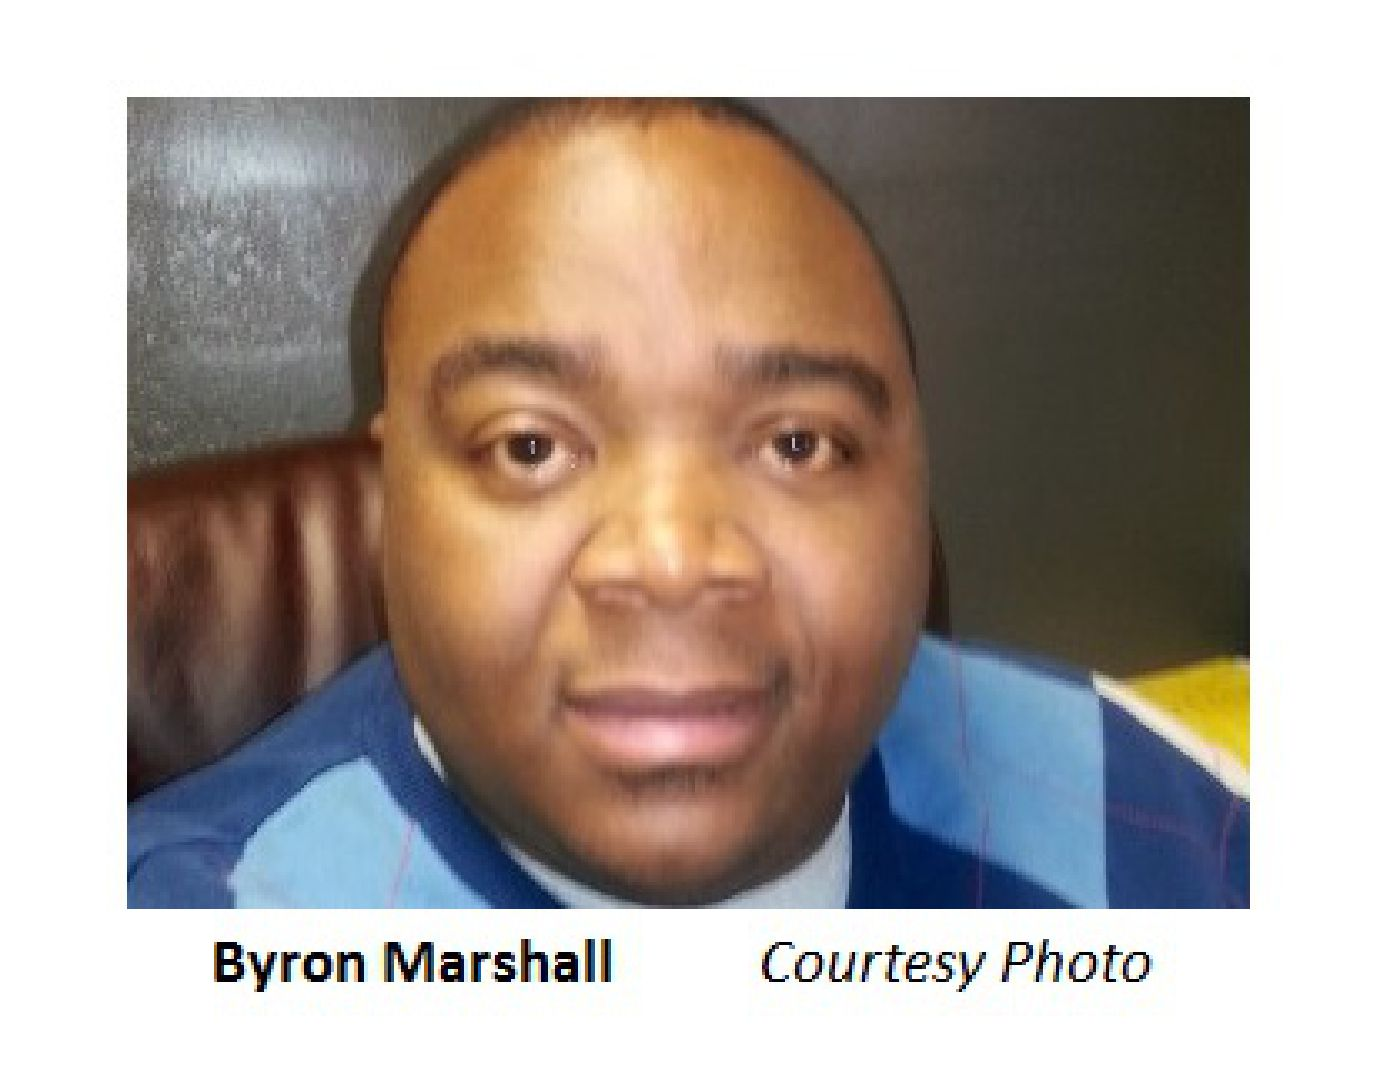 Byron Marshall Courtesy Photo